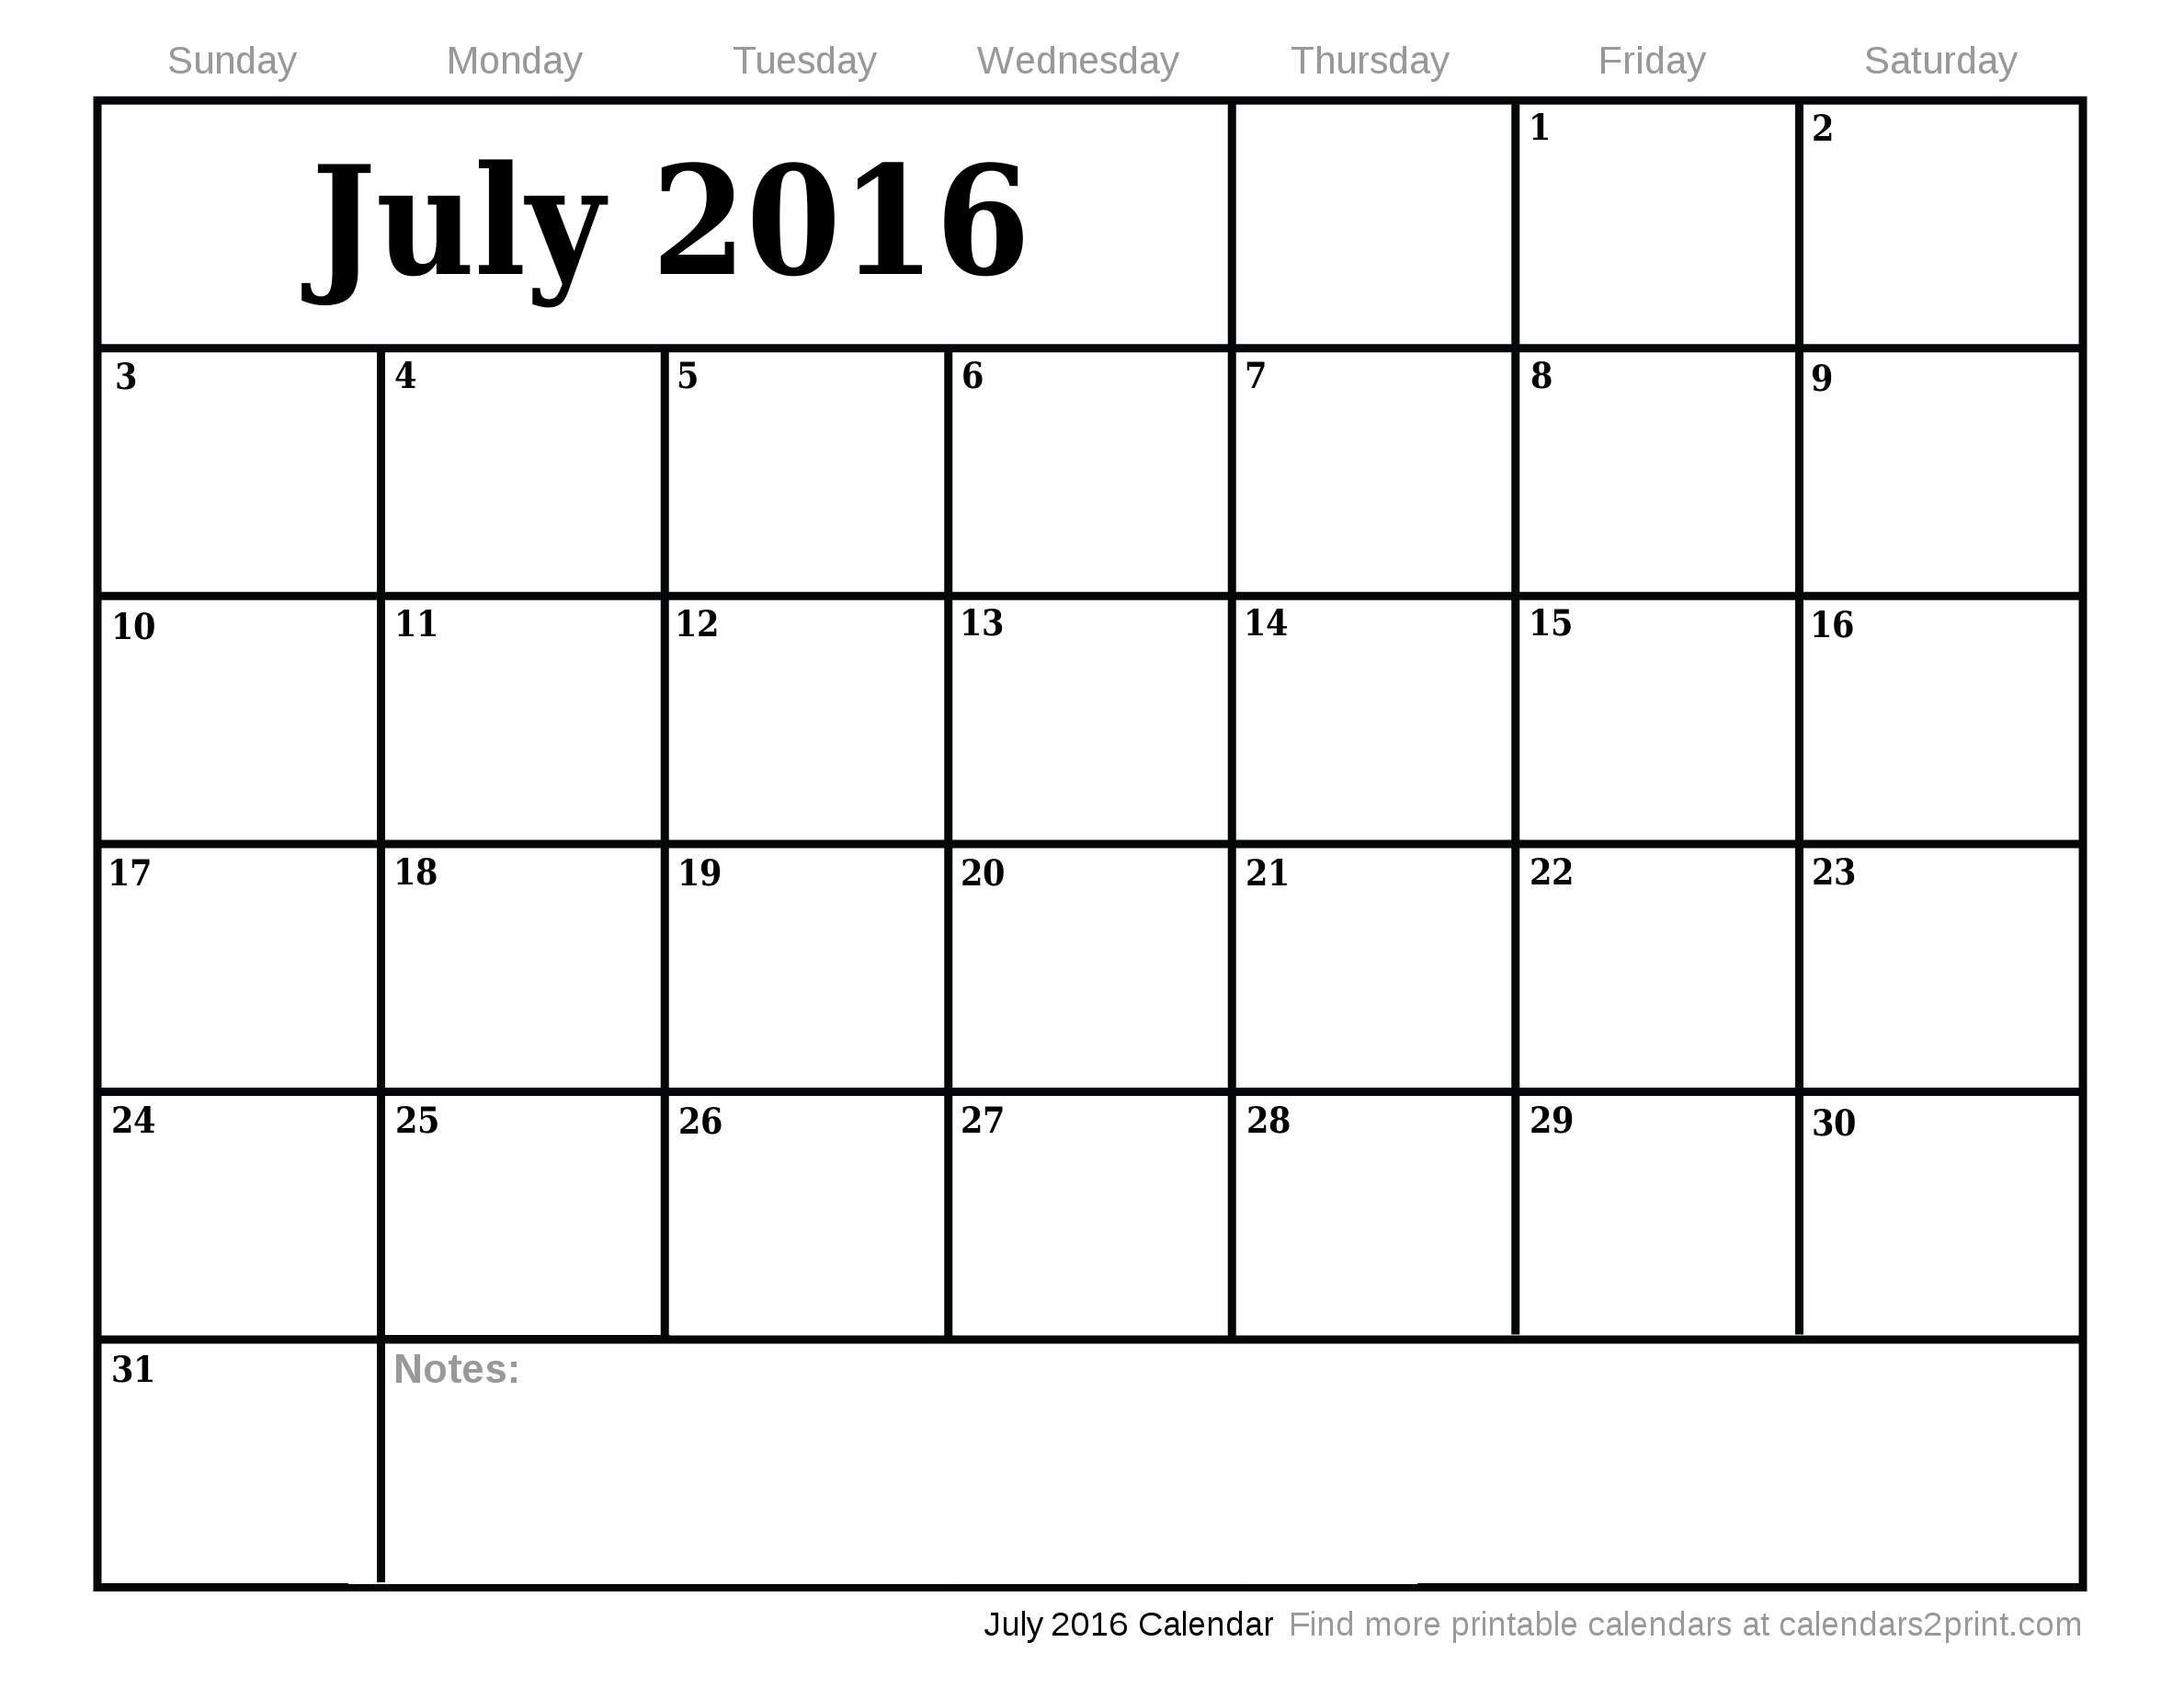 July 2016 Printable Calendar with July August 2016 Calendar